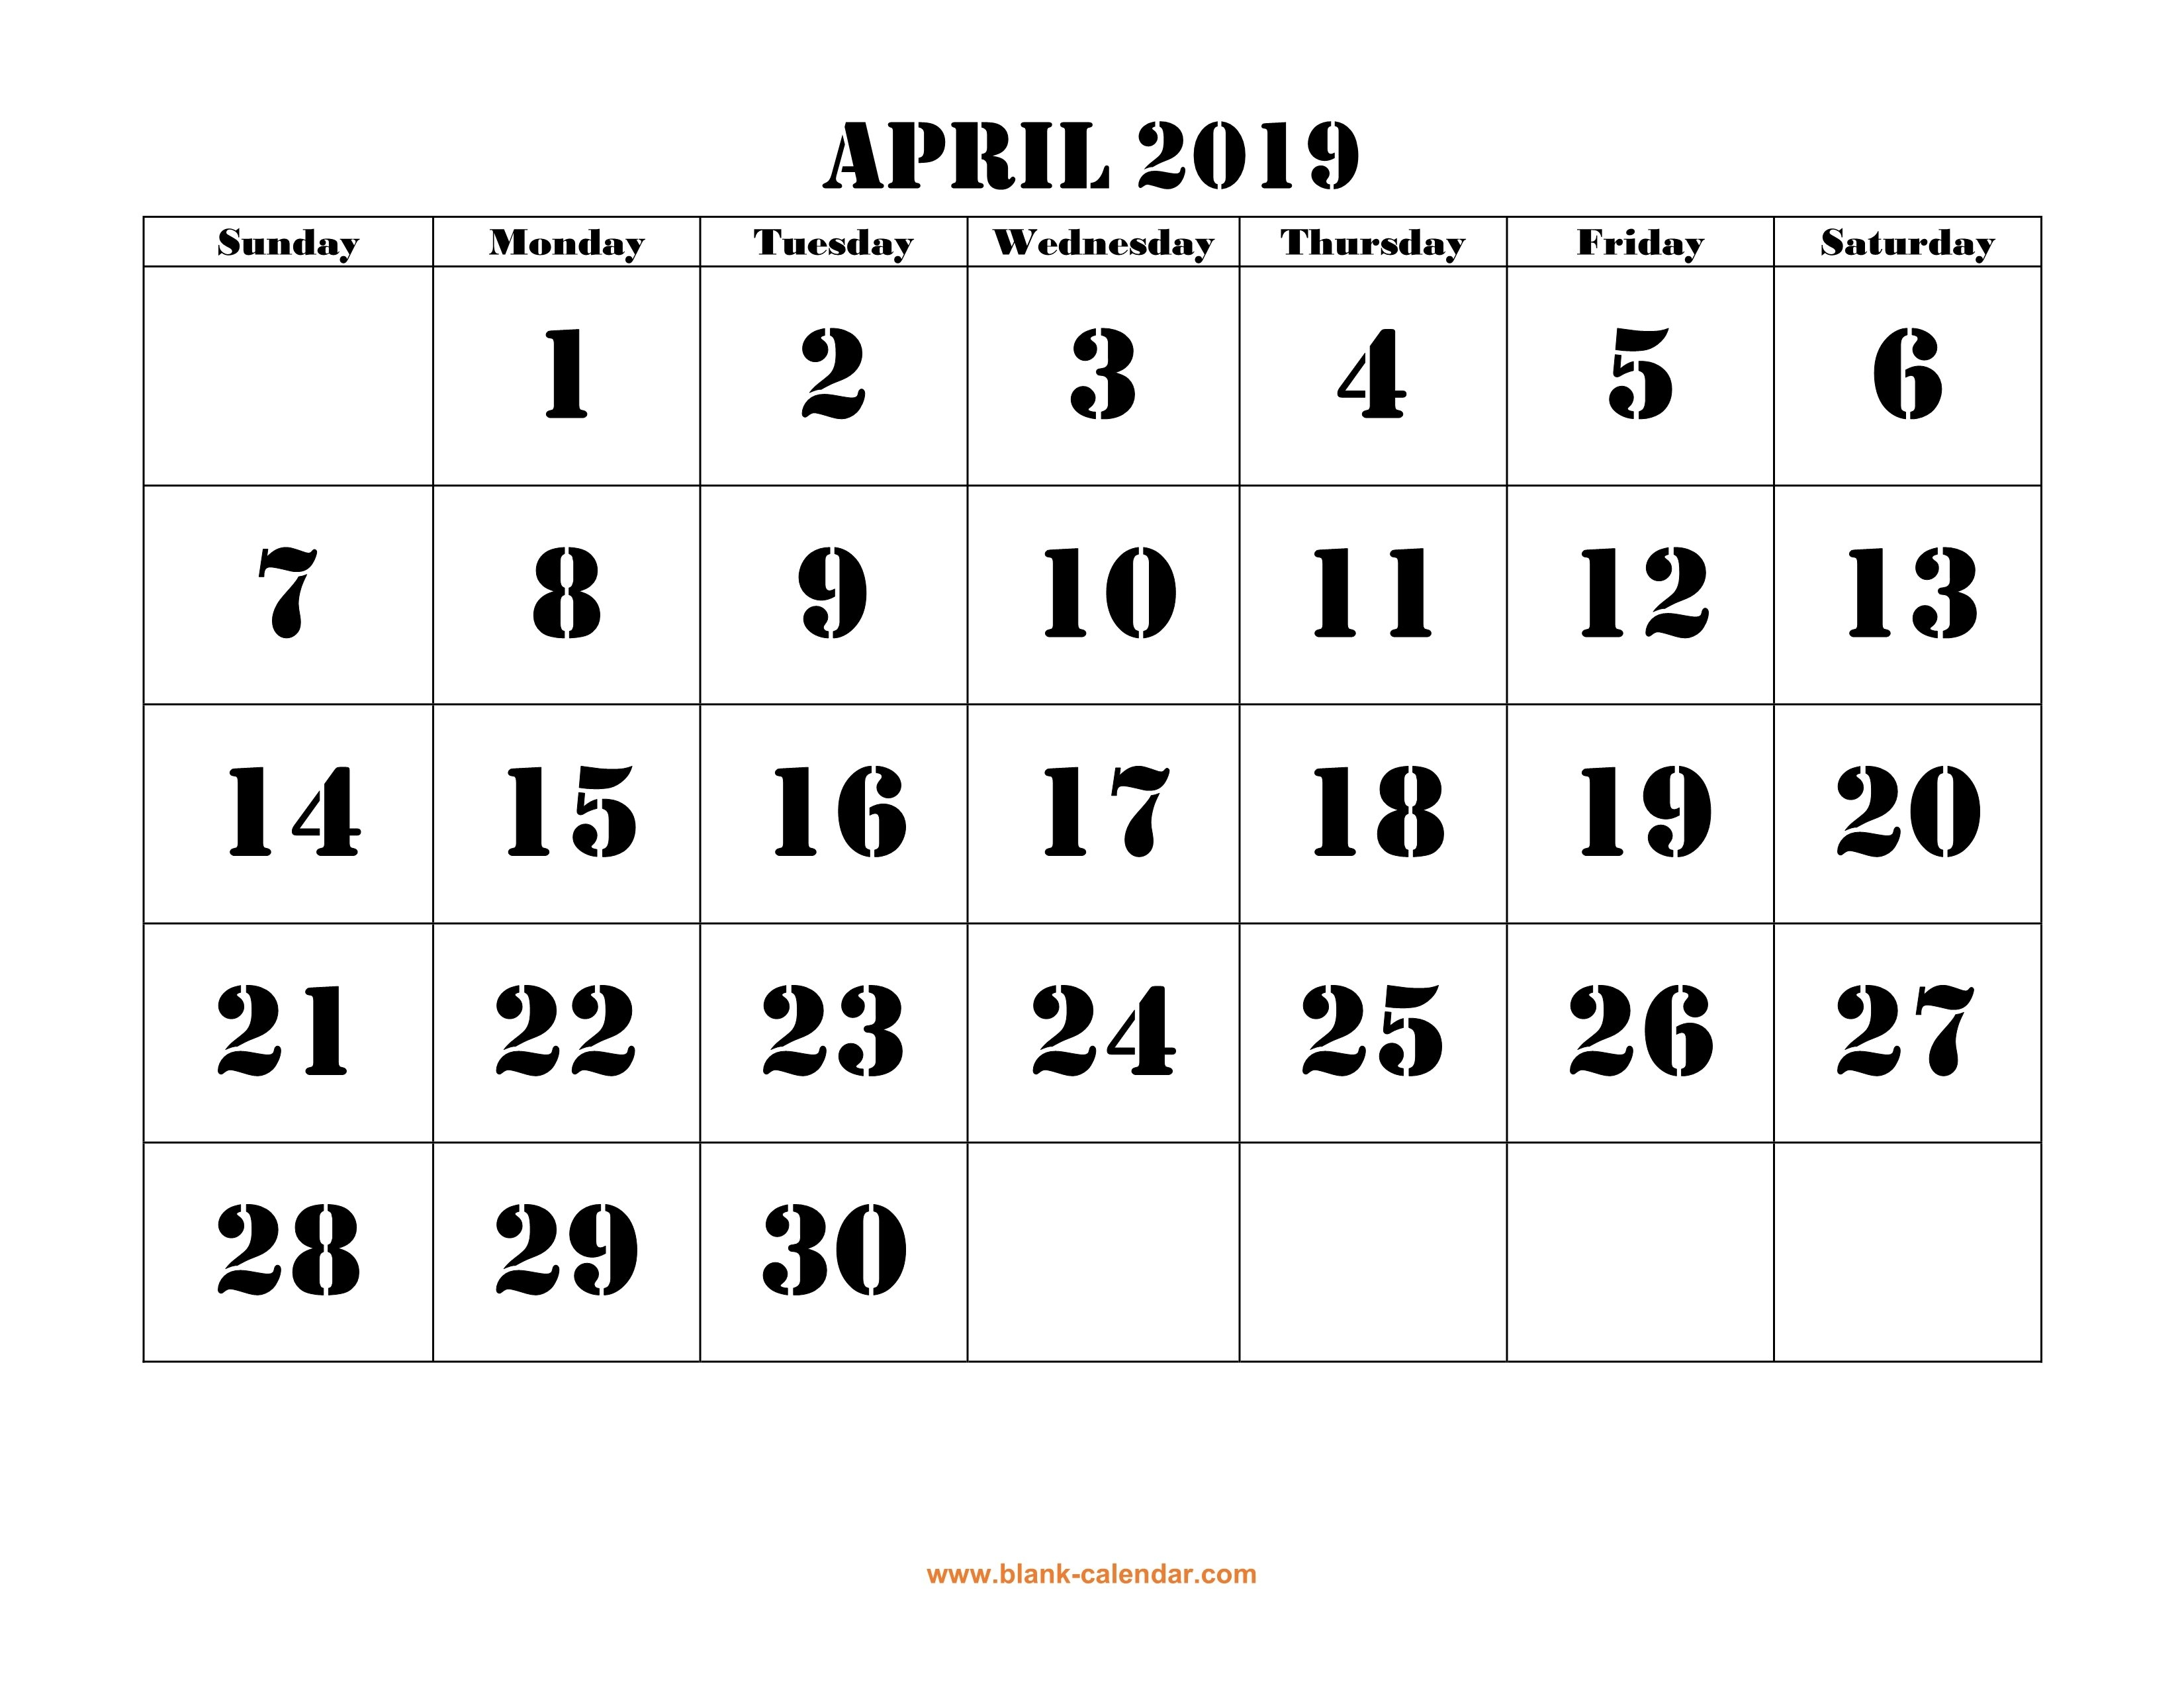 Free Download Printable April 2019 Calendar, Large Font Design Calendar April 6 2019